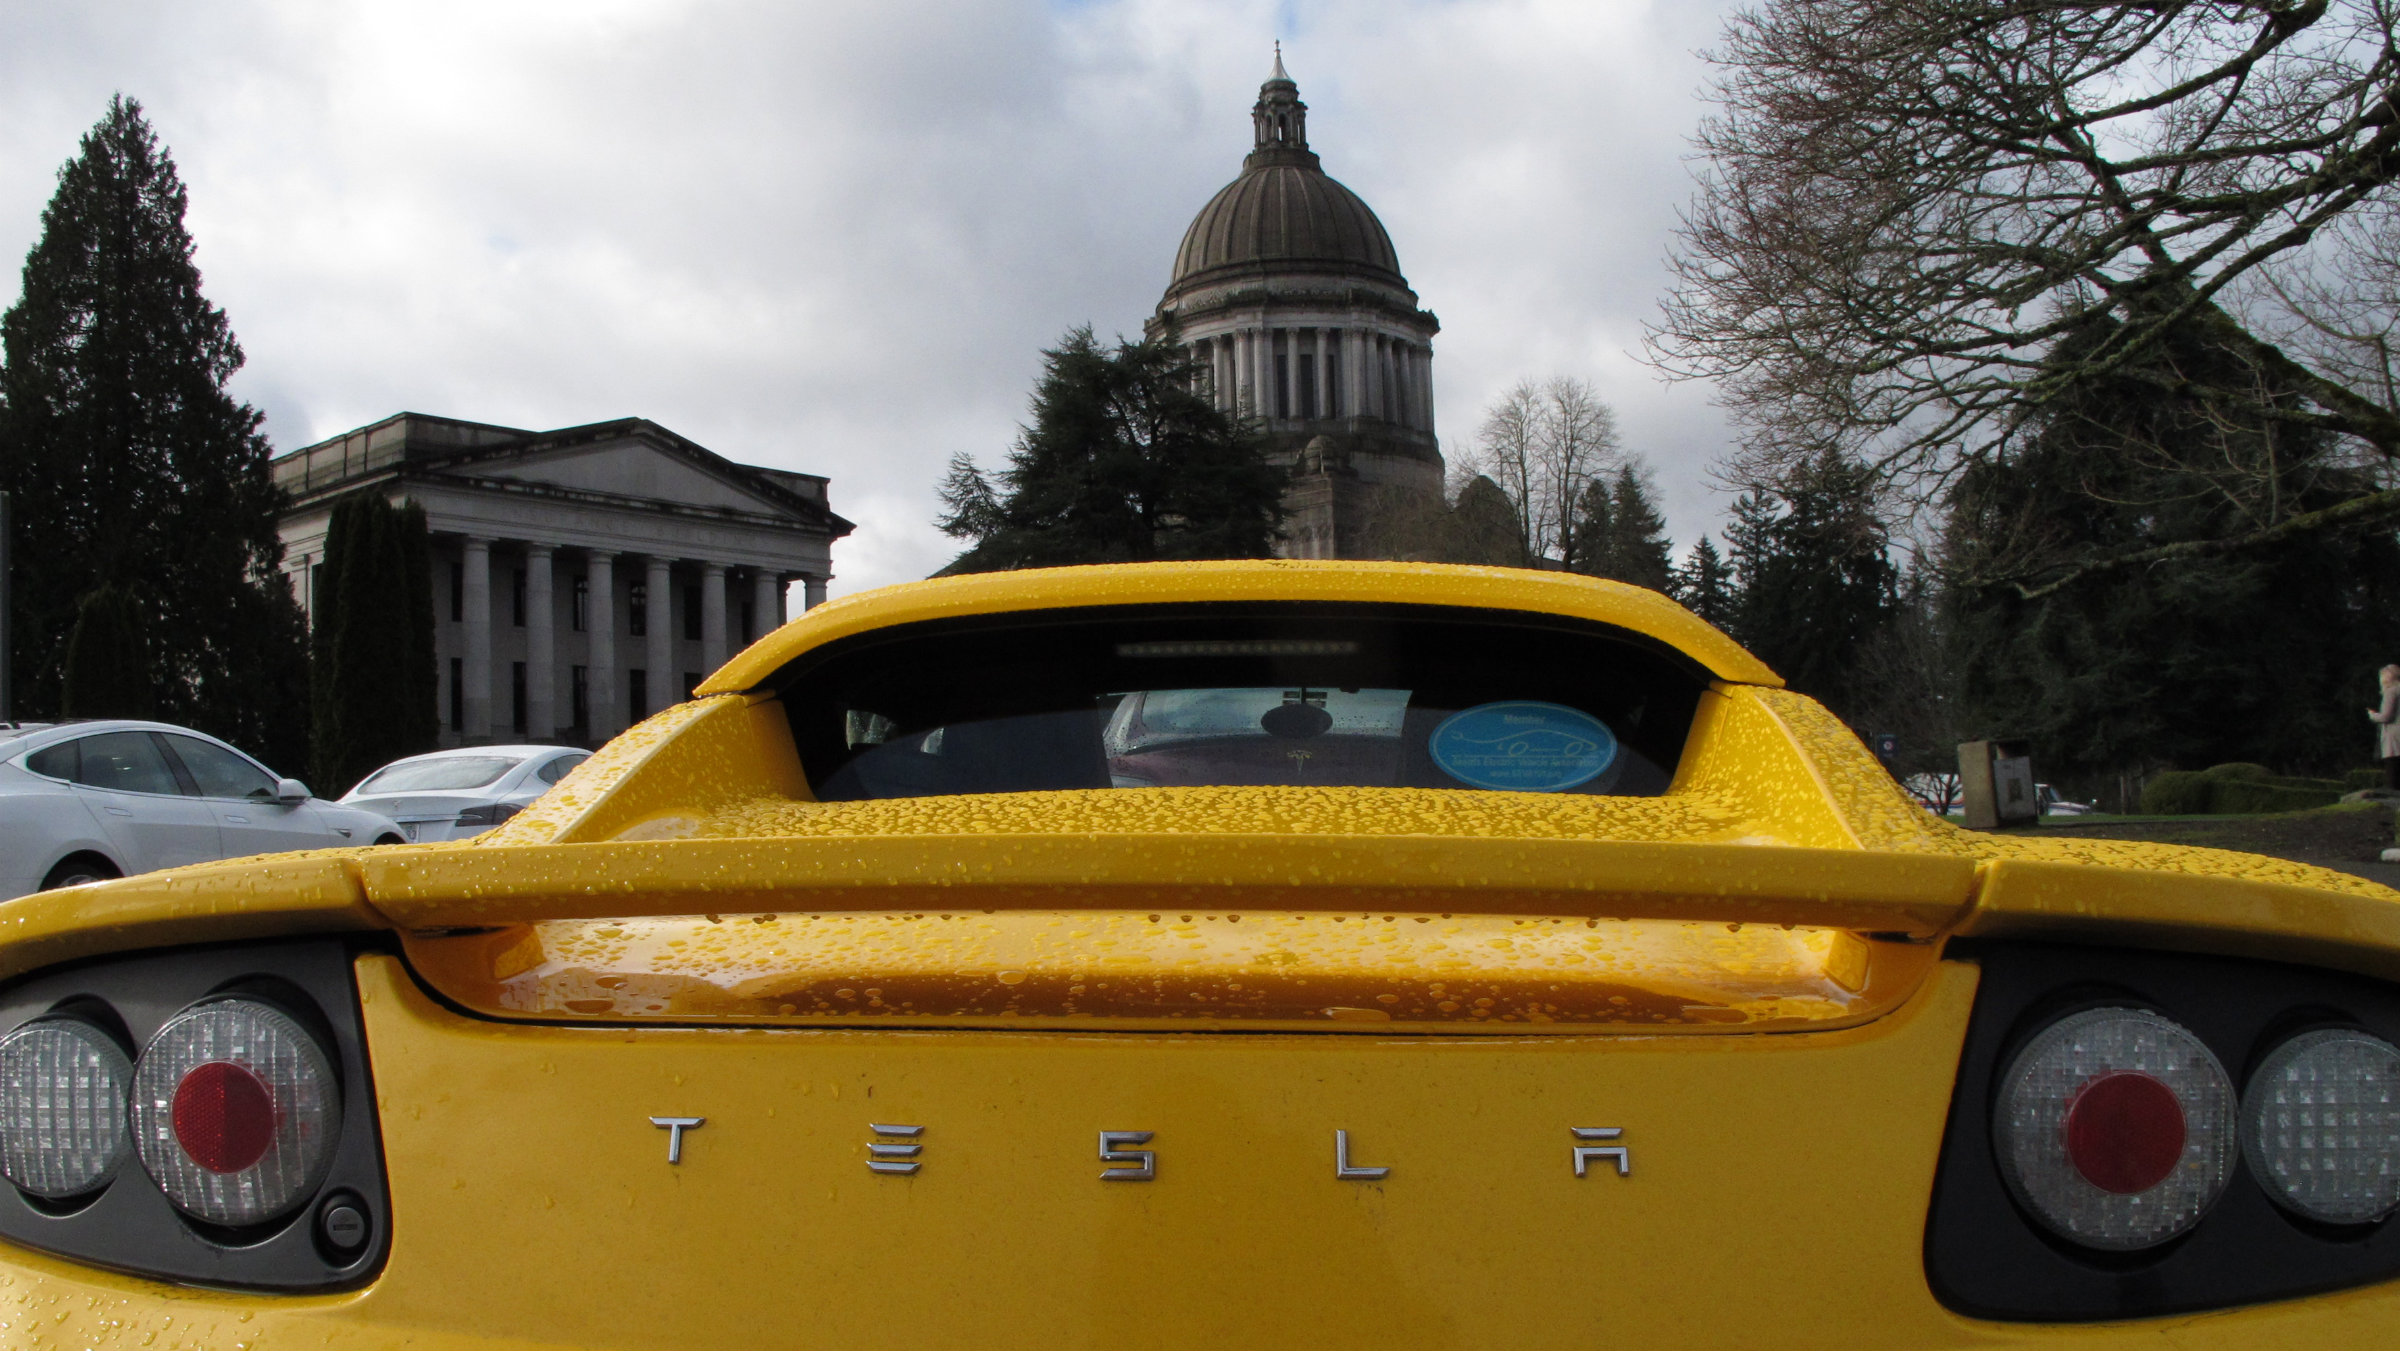 A Tesla car is parked near the Washington state Capitol on Monday, Feb. 17, 2014, in Olympia, Wash. The electric car company, which has sales and service operations in Seattle and Bellevue, held a rally to protest measures being considered by the Legislature that would prevent it from opening additional facilities in the state. (AP Photo/Rachel La Corte